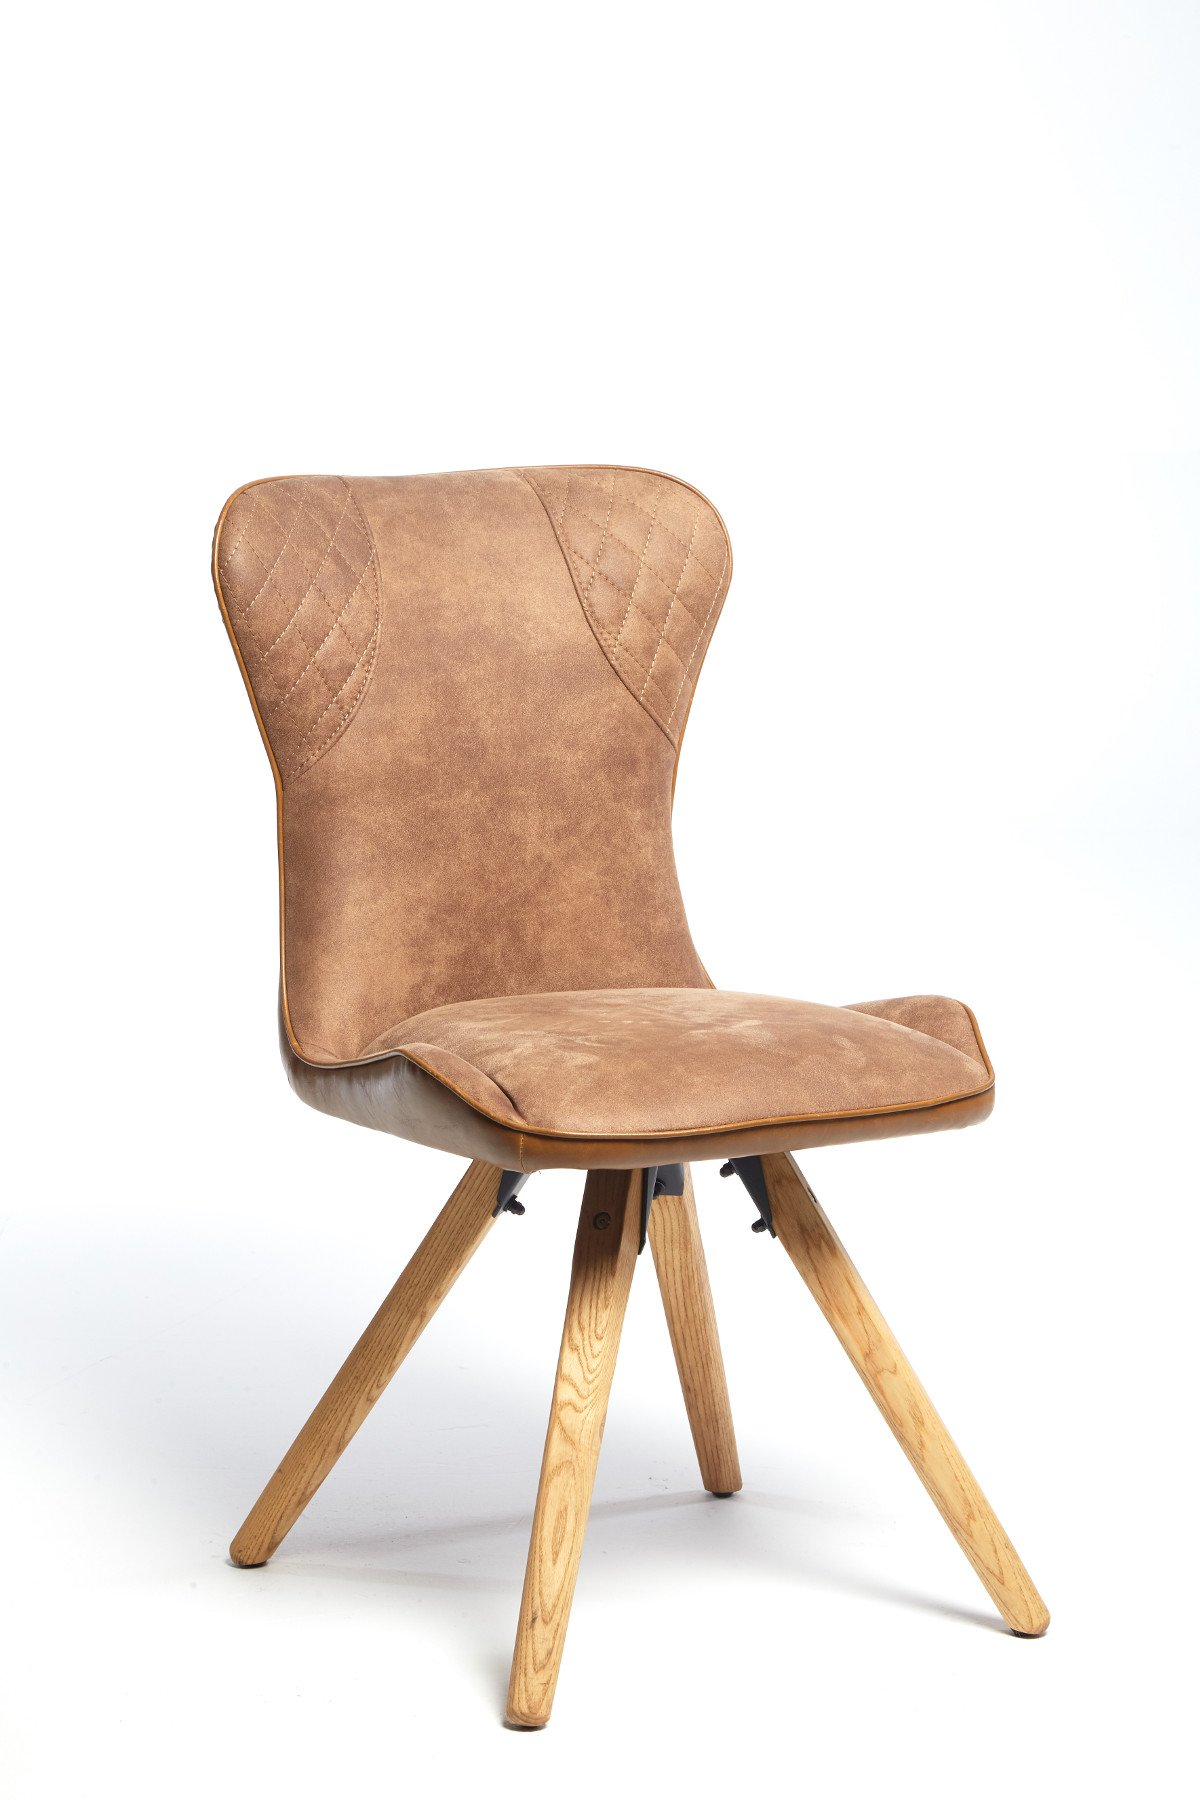 TANGO DINING CHAIR - ANGLE DETAIL